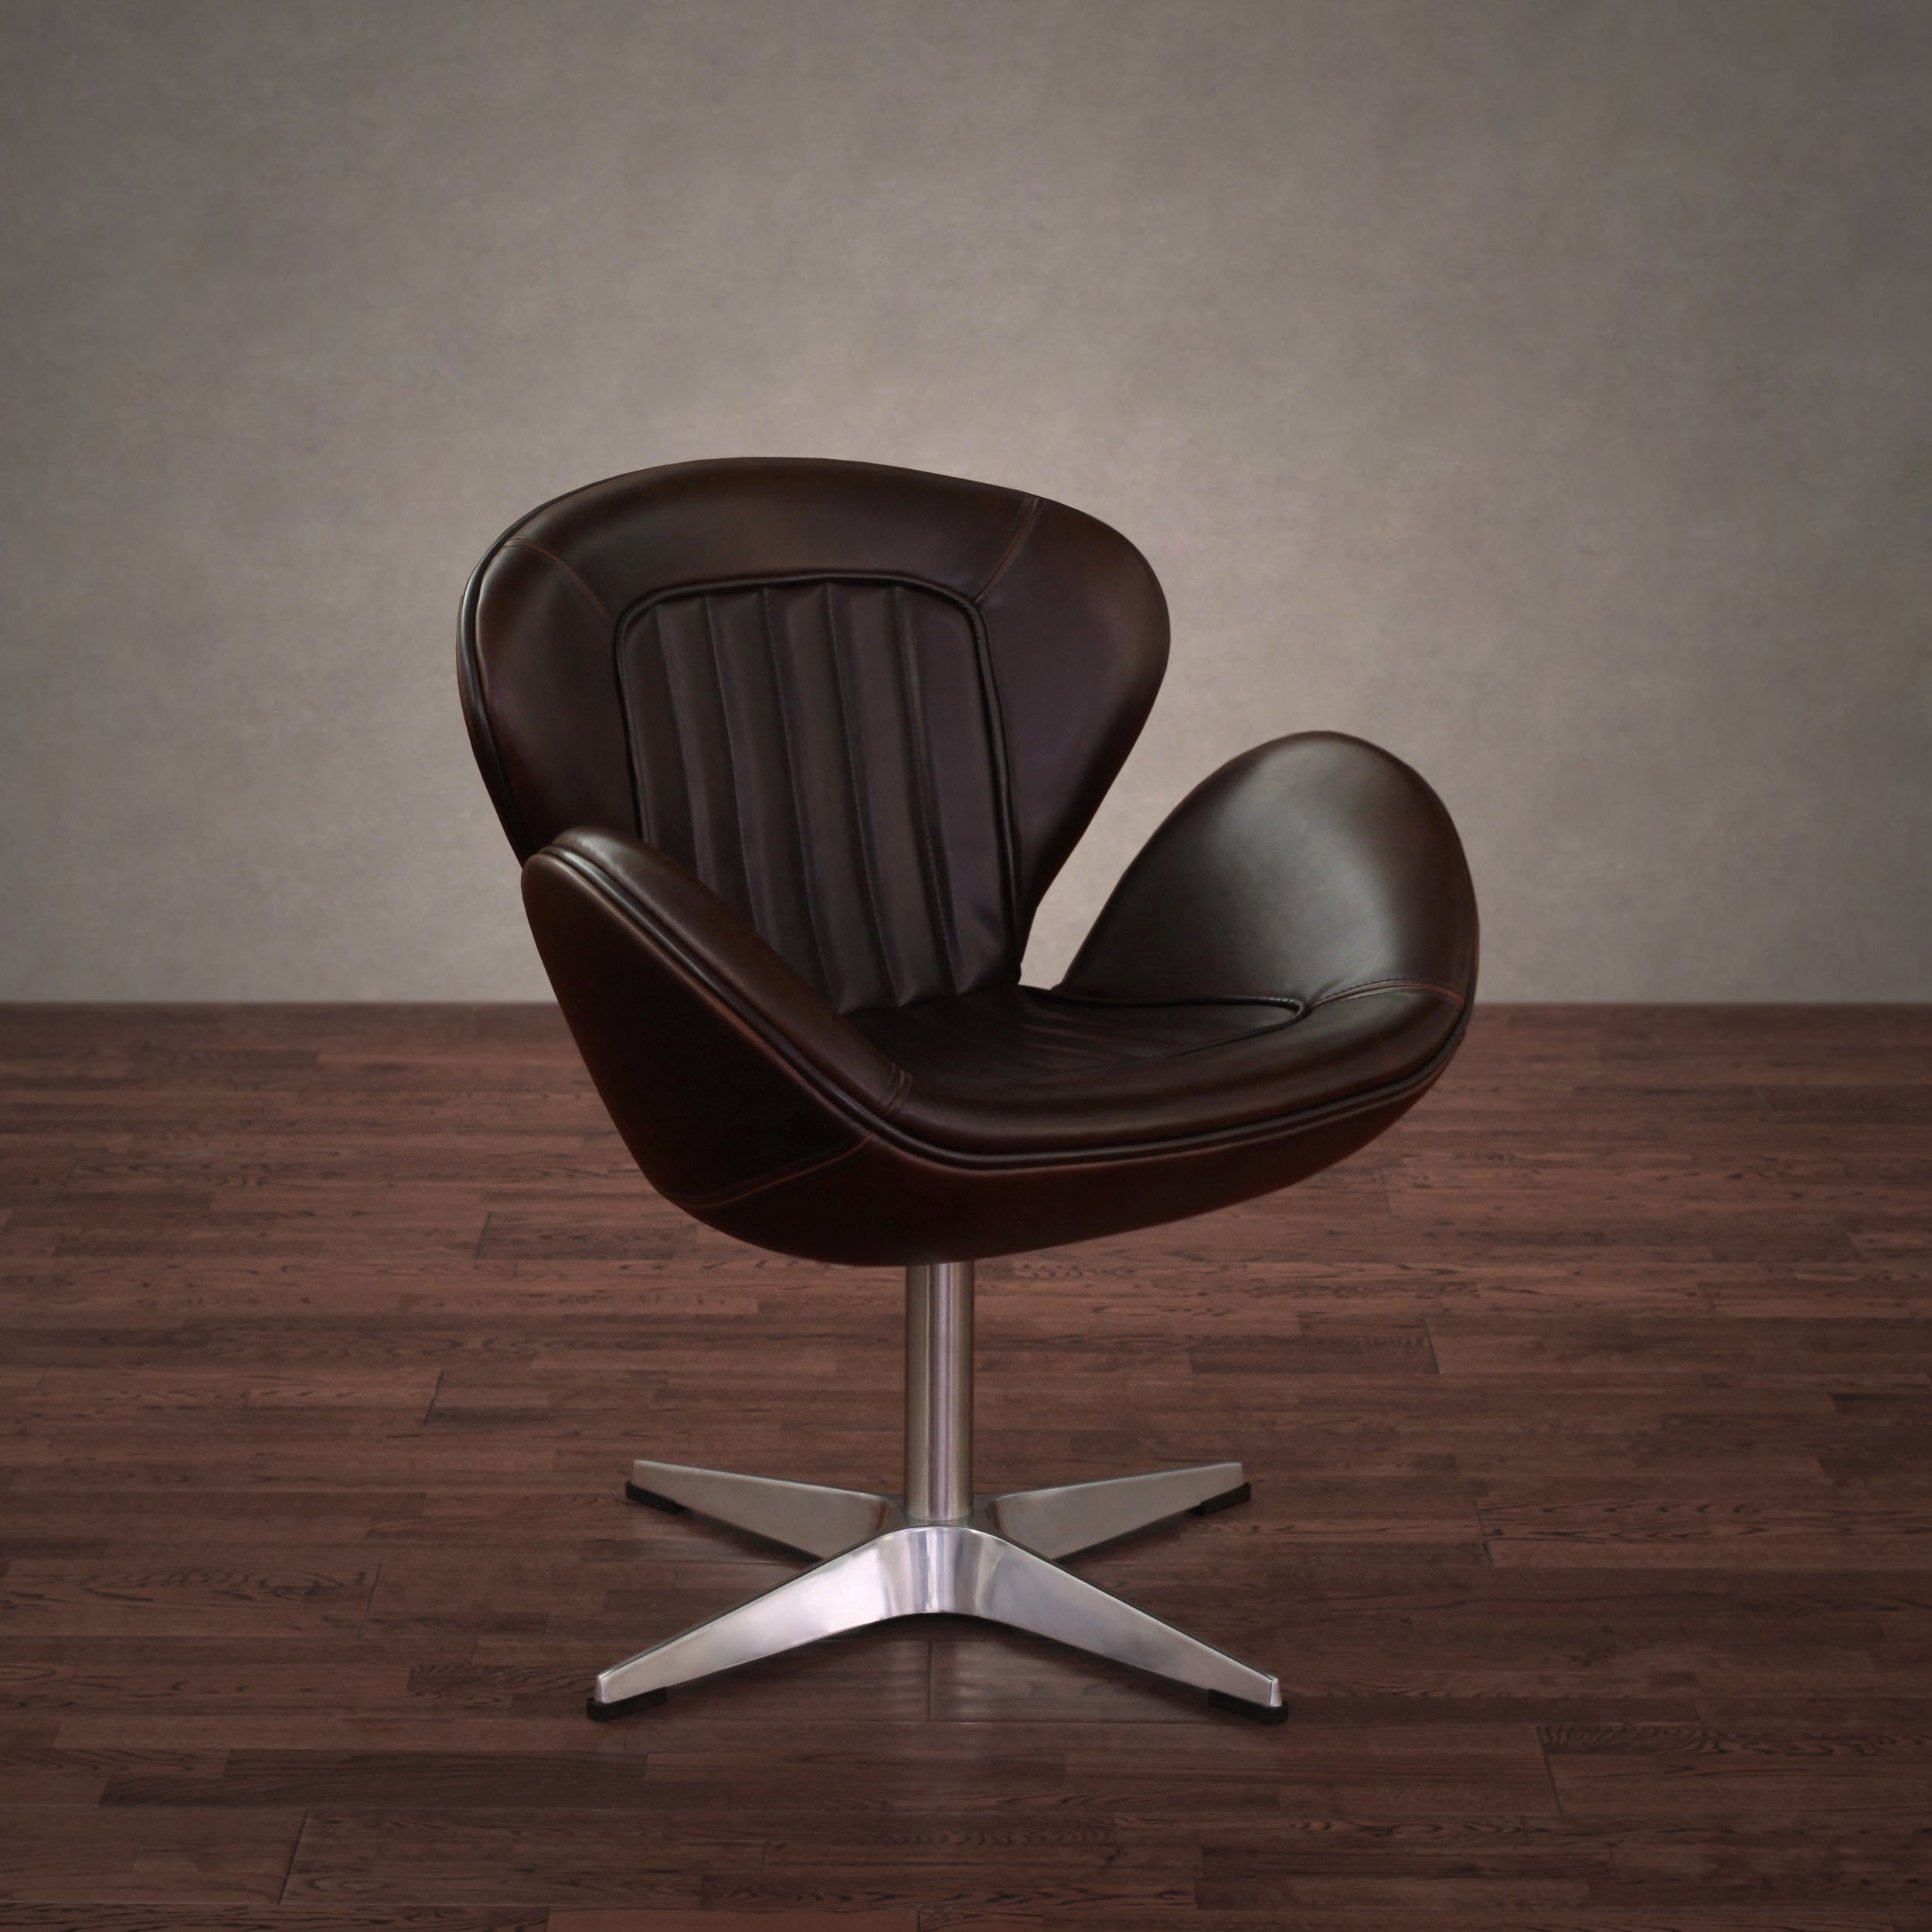 Shop Amelia Vintage Tobacco Leather Swivel Chair – Free Shipping Inside Swivel Tobacco Leather Chairs (View 2 of 25)